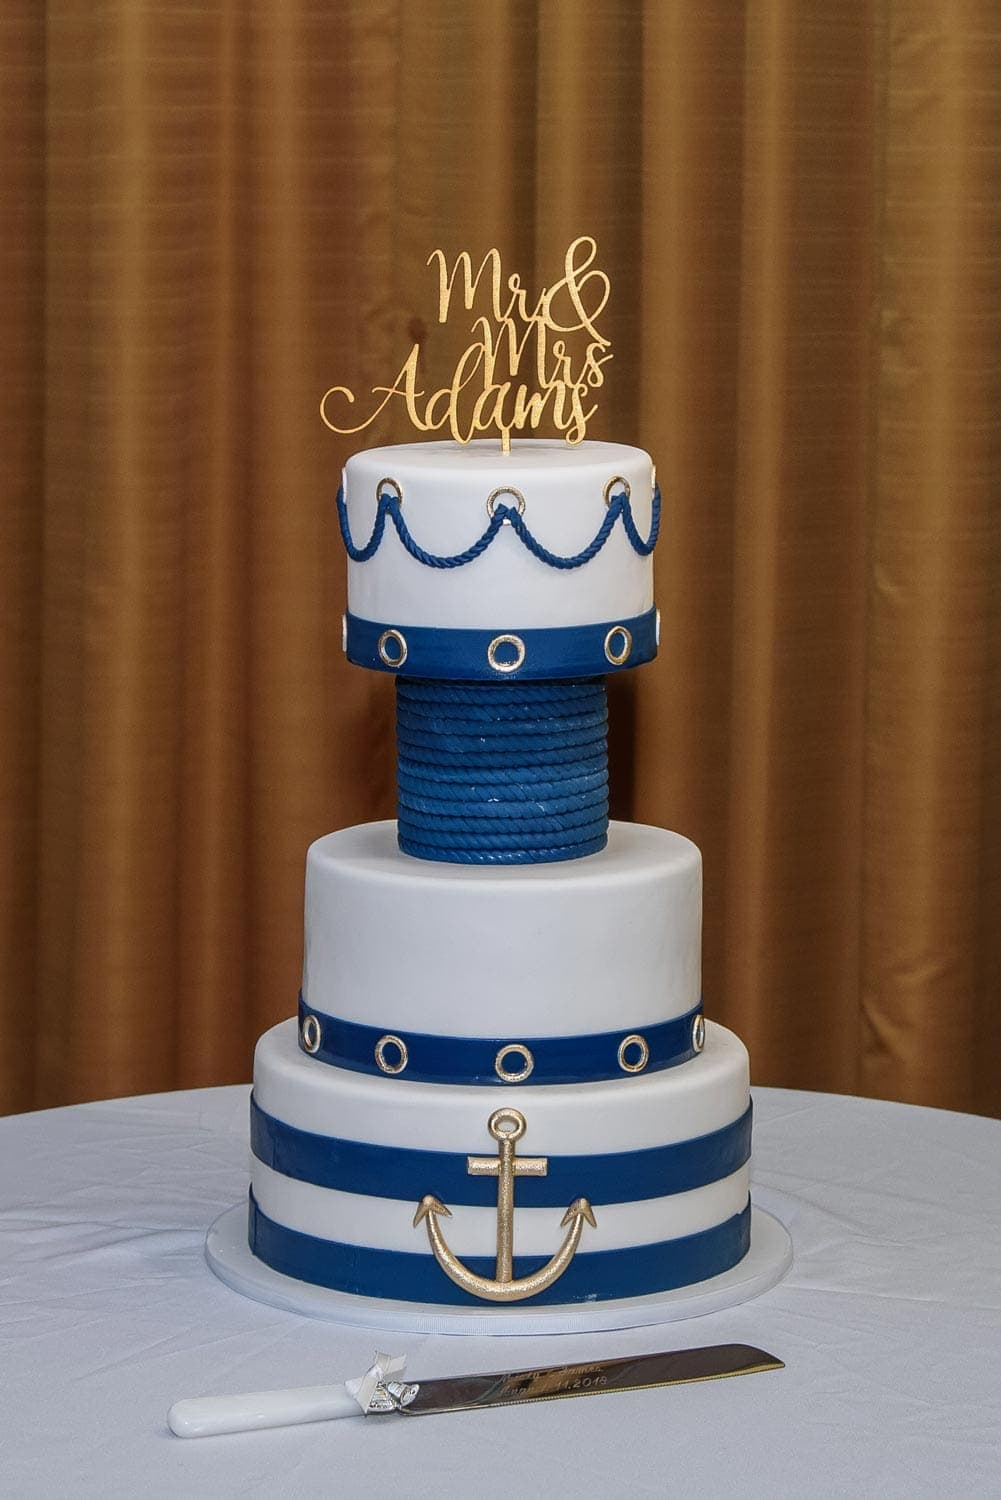 A nautical sea themed wedding cake with gold mr and mrs wedding cake topper at a Juno Tower Halifax wedding..